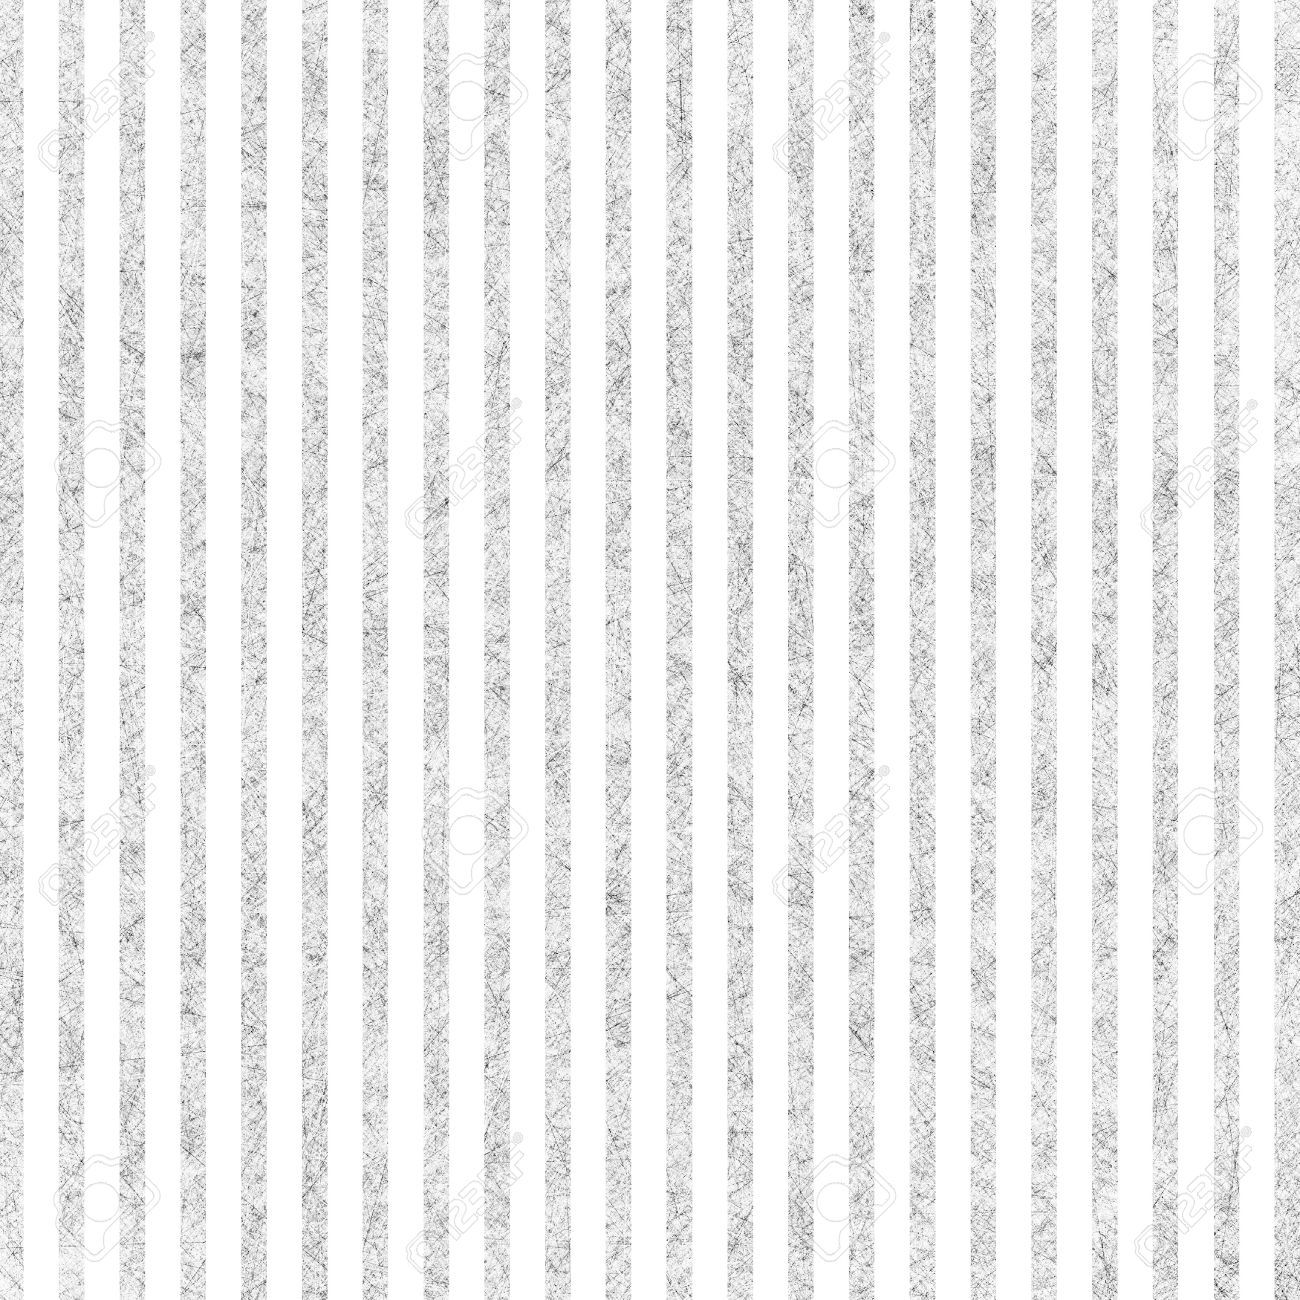 Line Texture Background : Abstract pattern background white gray tripe